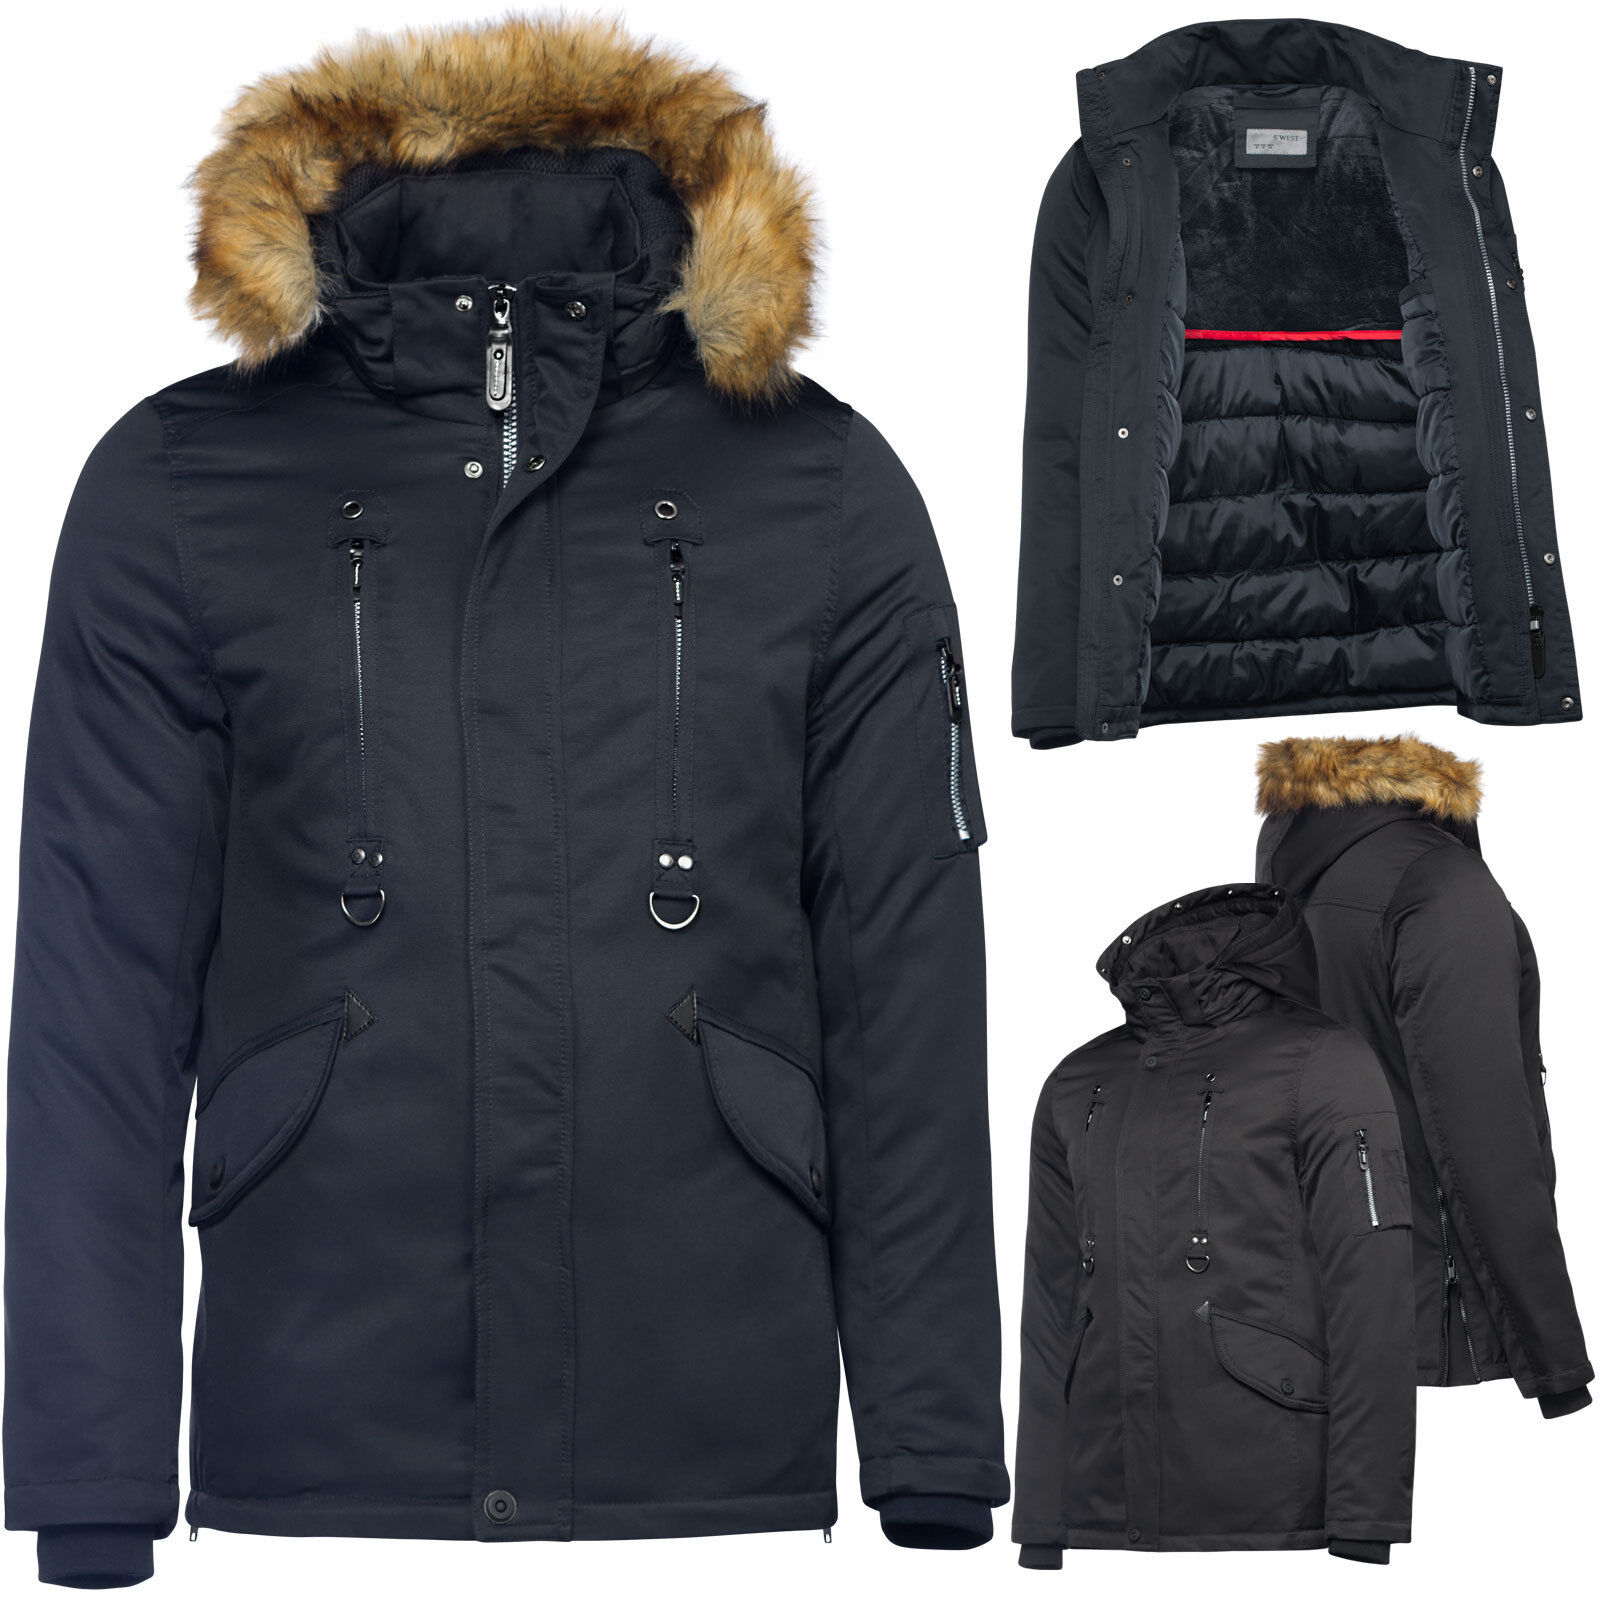 herren winterjacke wasserdicht lang parka fell kapuze alaska warm gef ttert eur 54 95. Black Bedroom Furniture Sets. Home Design Ideas